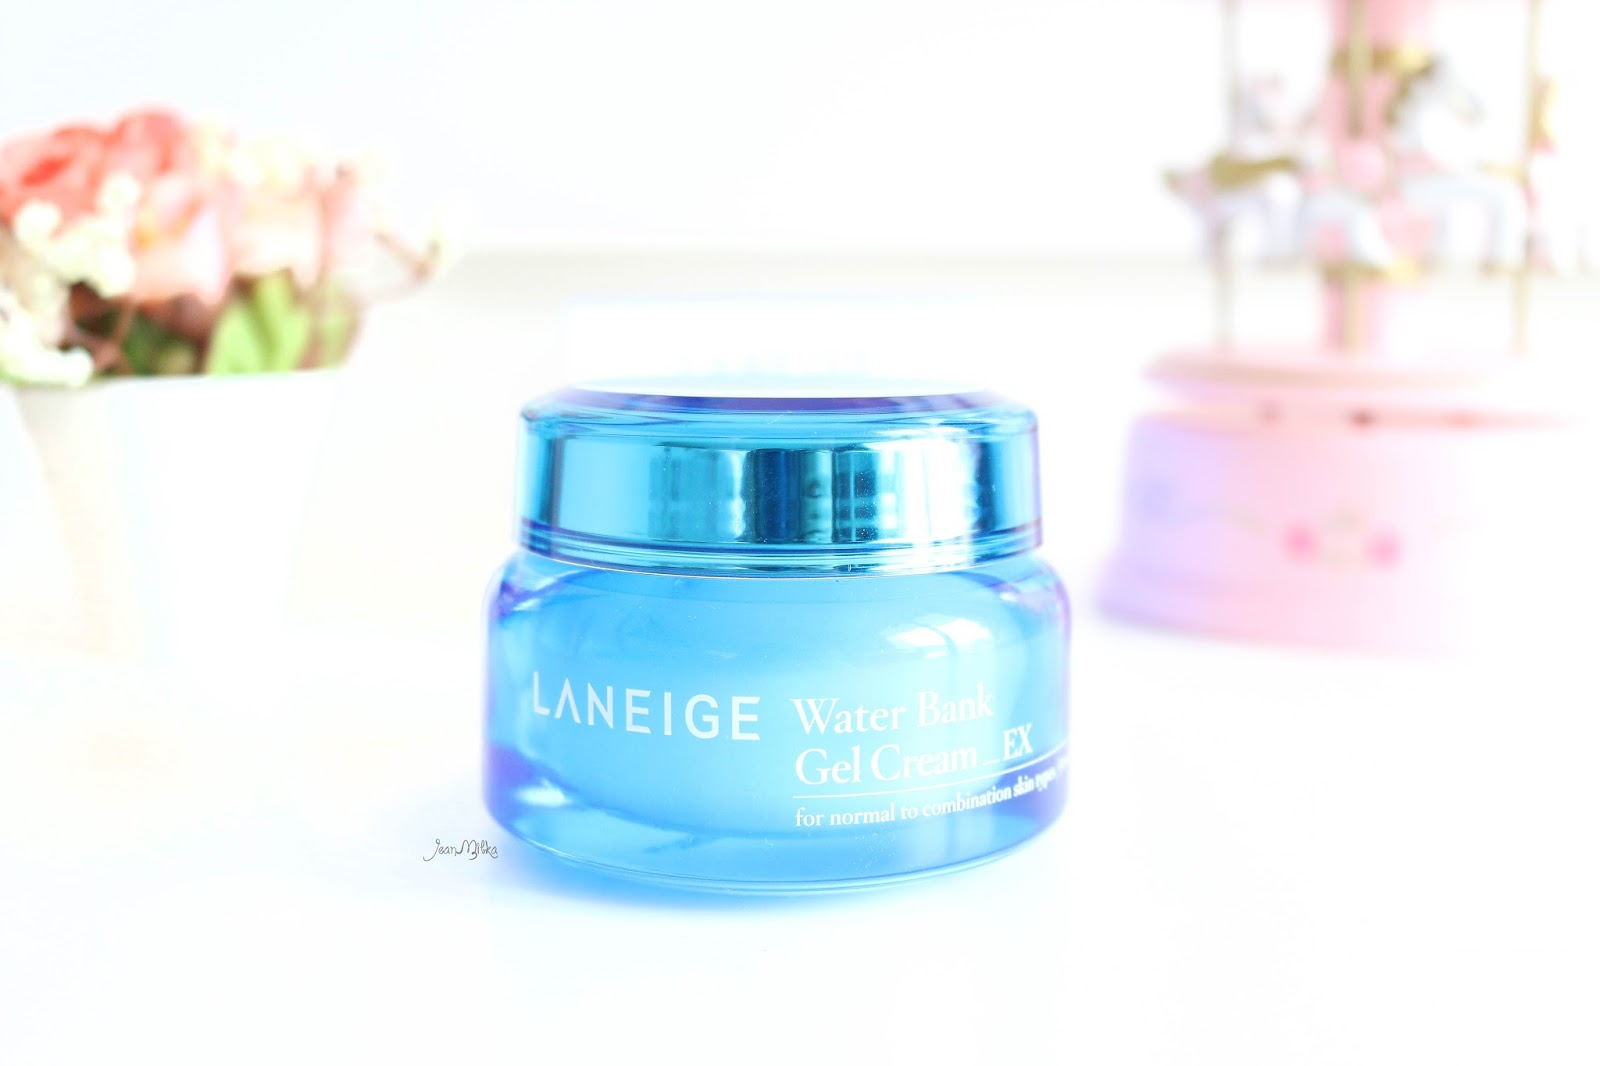 laneige, water bank, gel cream, oily skin, laneige water bank, skin care, review, moisturizer